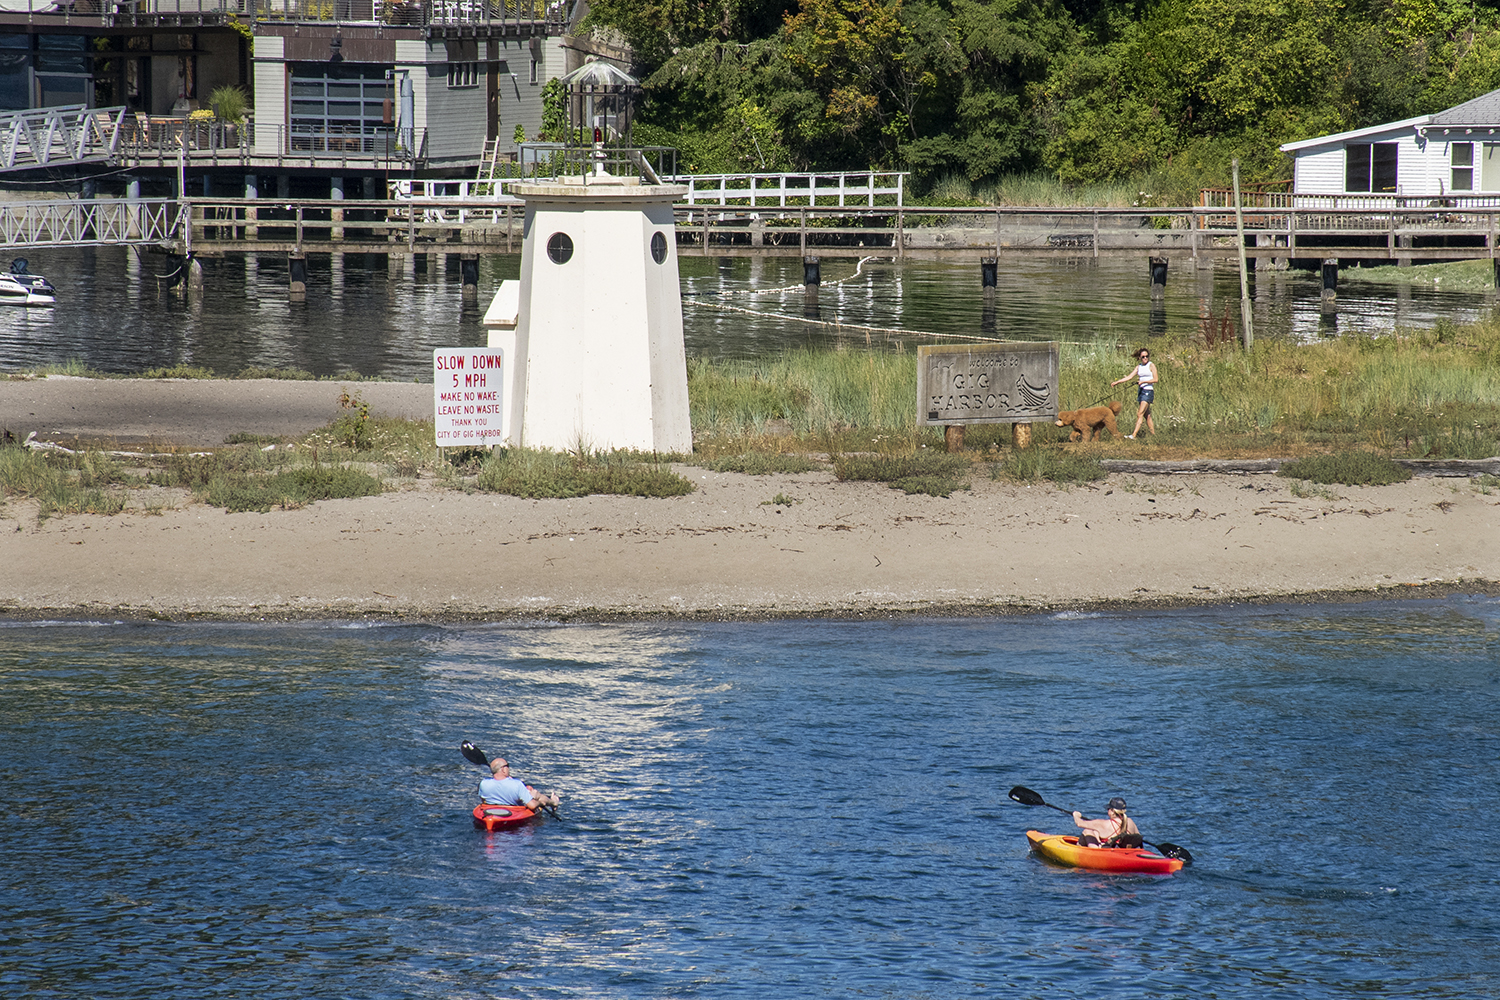 The smallest, working lighthouse in Washington state is just a 10-minute drive from Tacoma. At 15 feet tall, Gig Harbor Lighthouse was built in 1988 to provide casual boaters a private navigational aid. To get a closer look, rent a kayak in the nearby marina and paddle right up to the sandy shore. (Image: Rachael Jones / Seattle Refined)